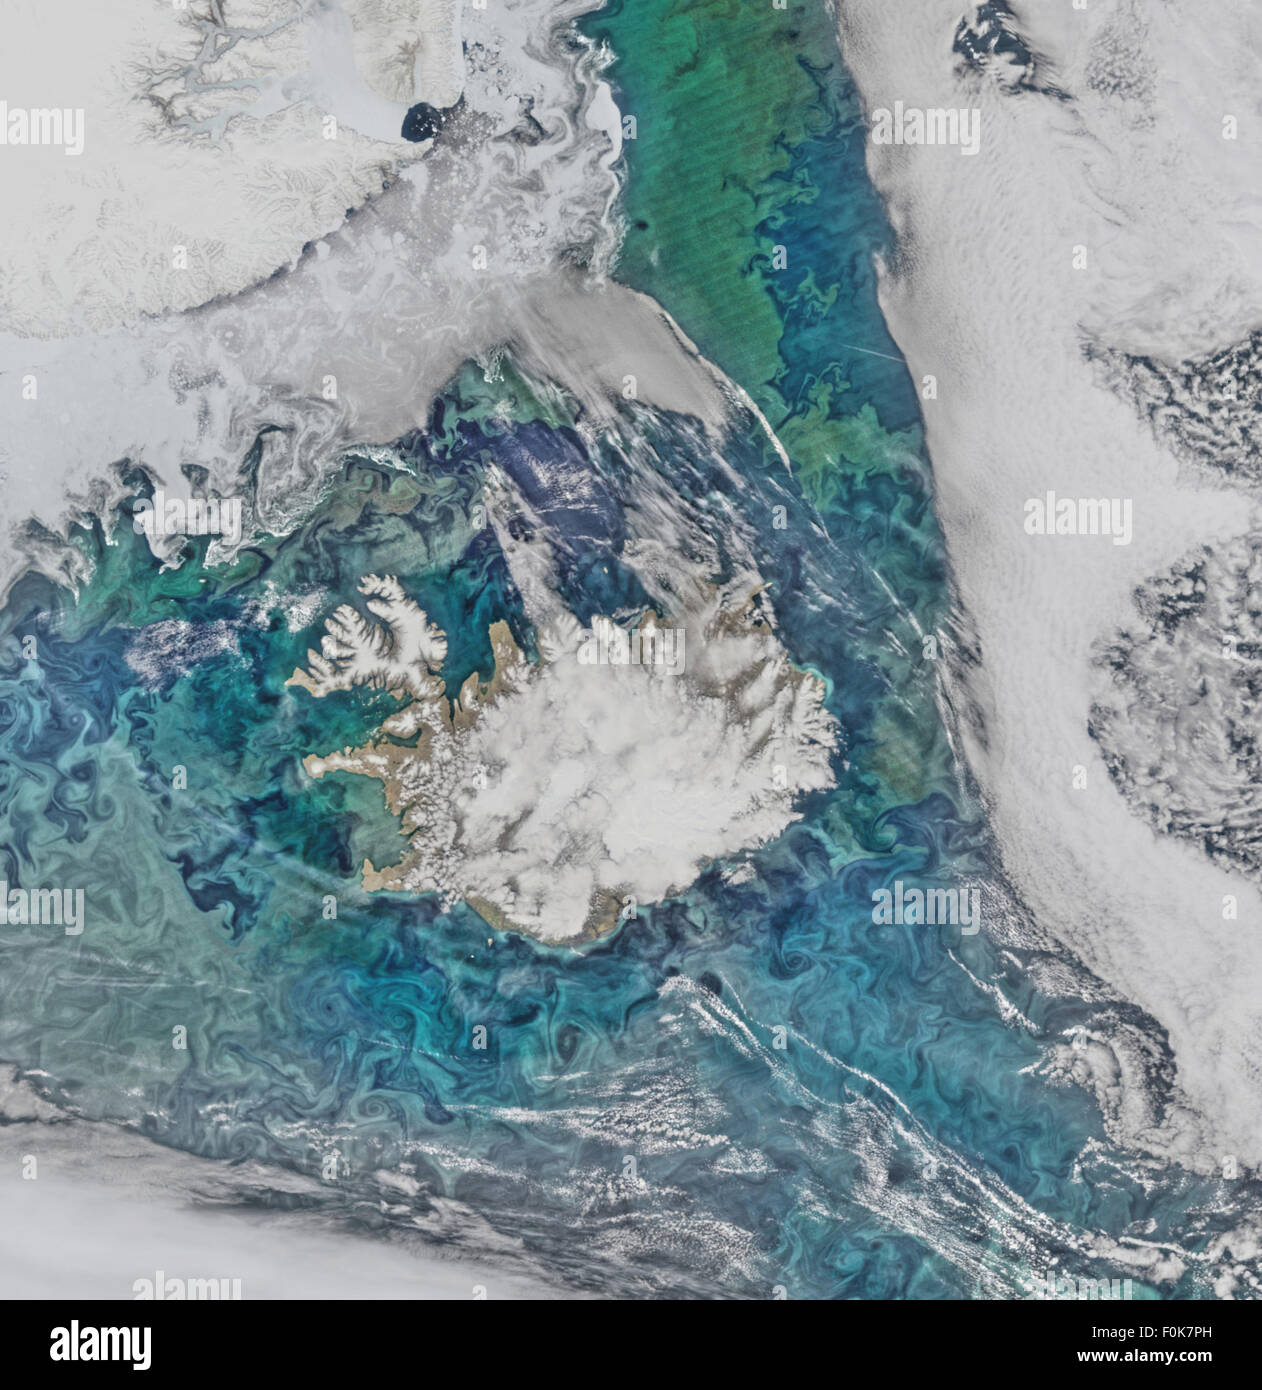 Phytoplankton communities and sea ice limn the turbulent flow field around Iceland in this Suomi-NPP/VIIRS scene - Stock Image